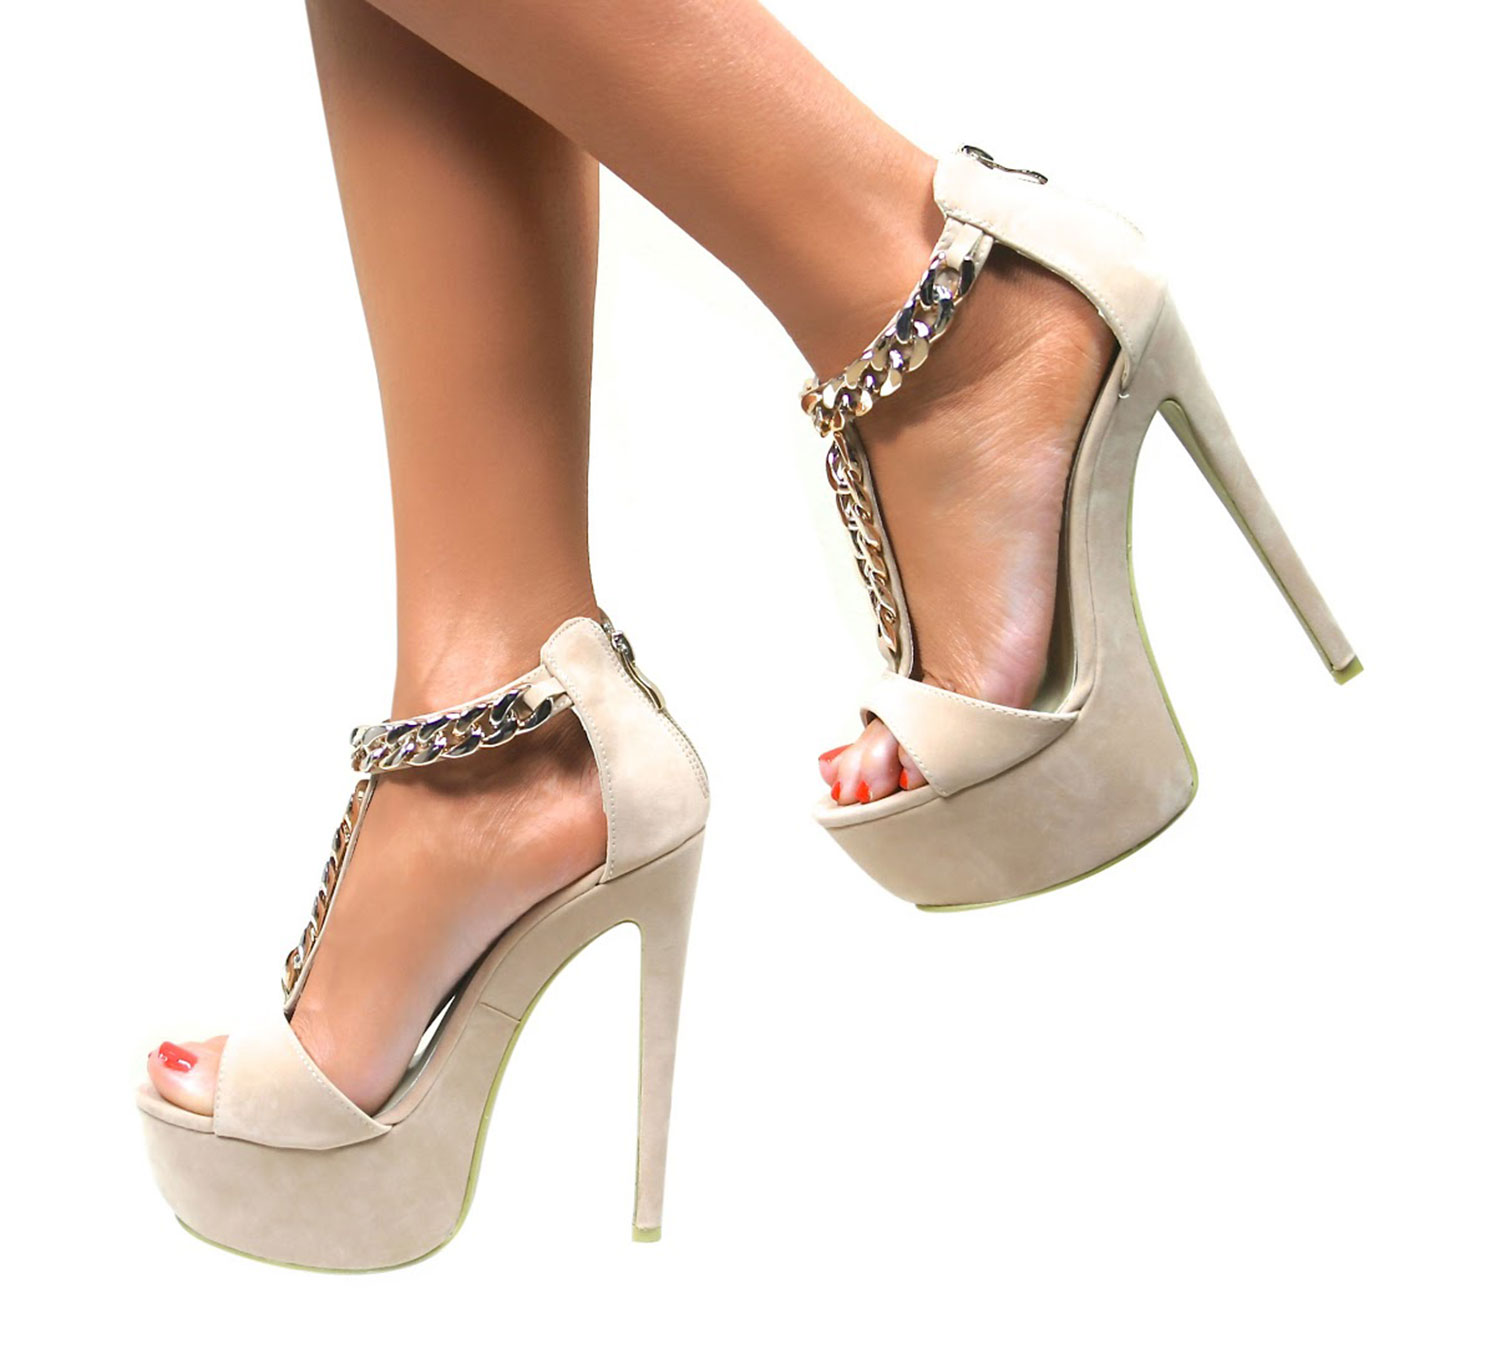 WOMENS STRAPPY PEEP TOE PLATFORM STILETTO HIGH HEELS SHOE SANDALS ...